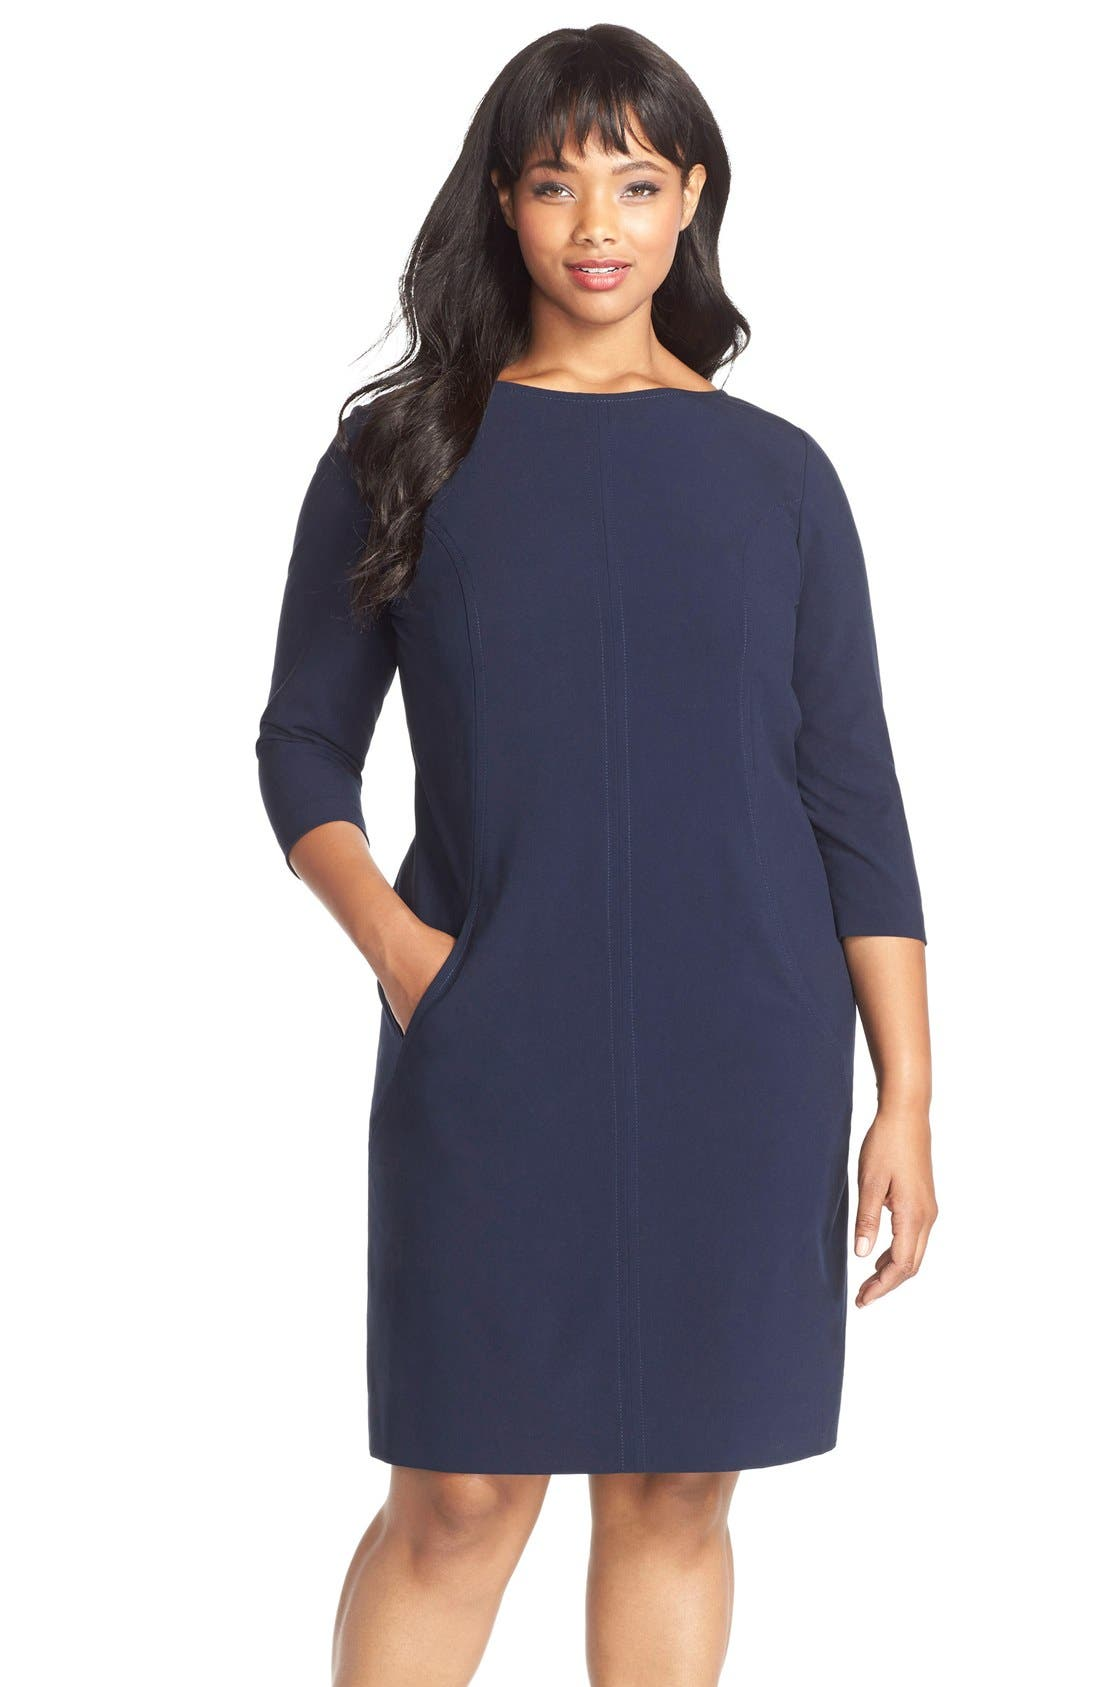 Free shipping BOTH ways on plus size a line black dress, from our vast selection of styles. Fast delivery, and 24/7/ real-person service with a smile. Click or call